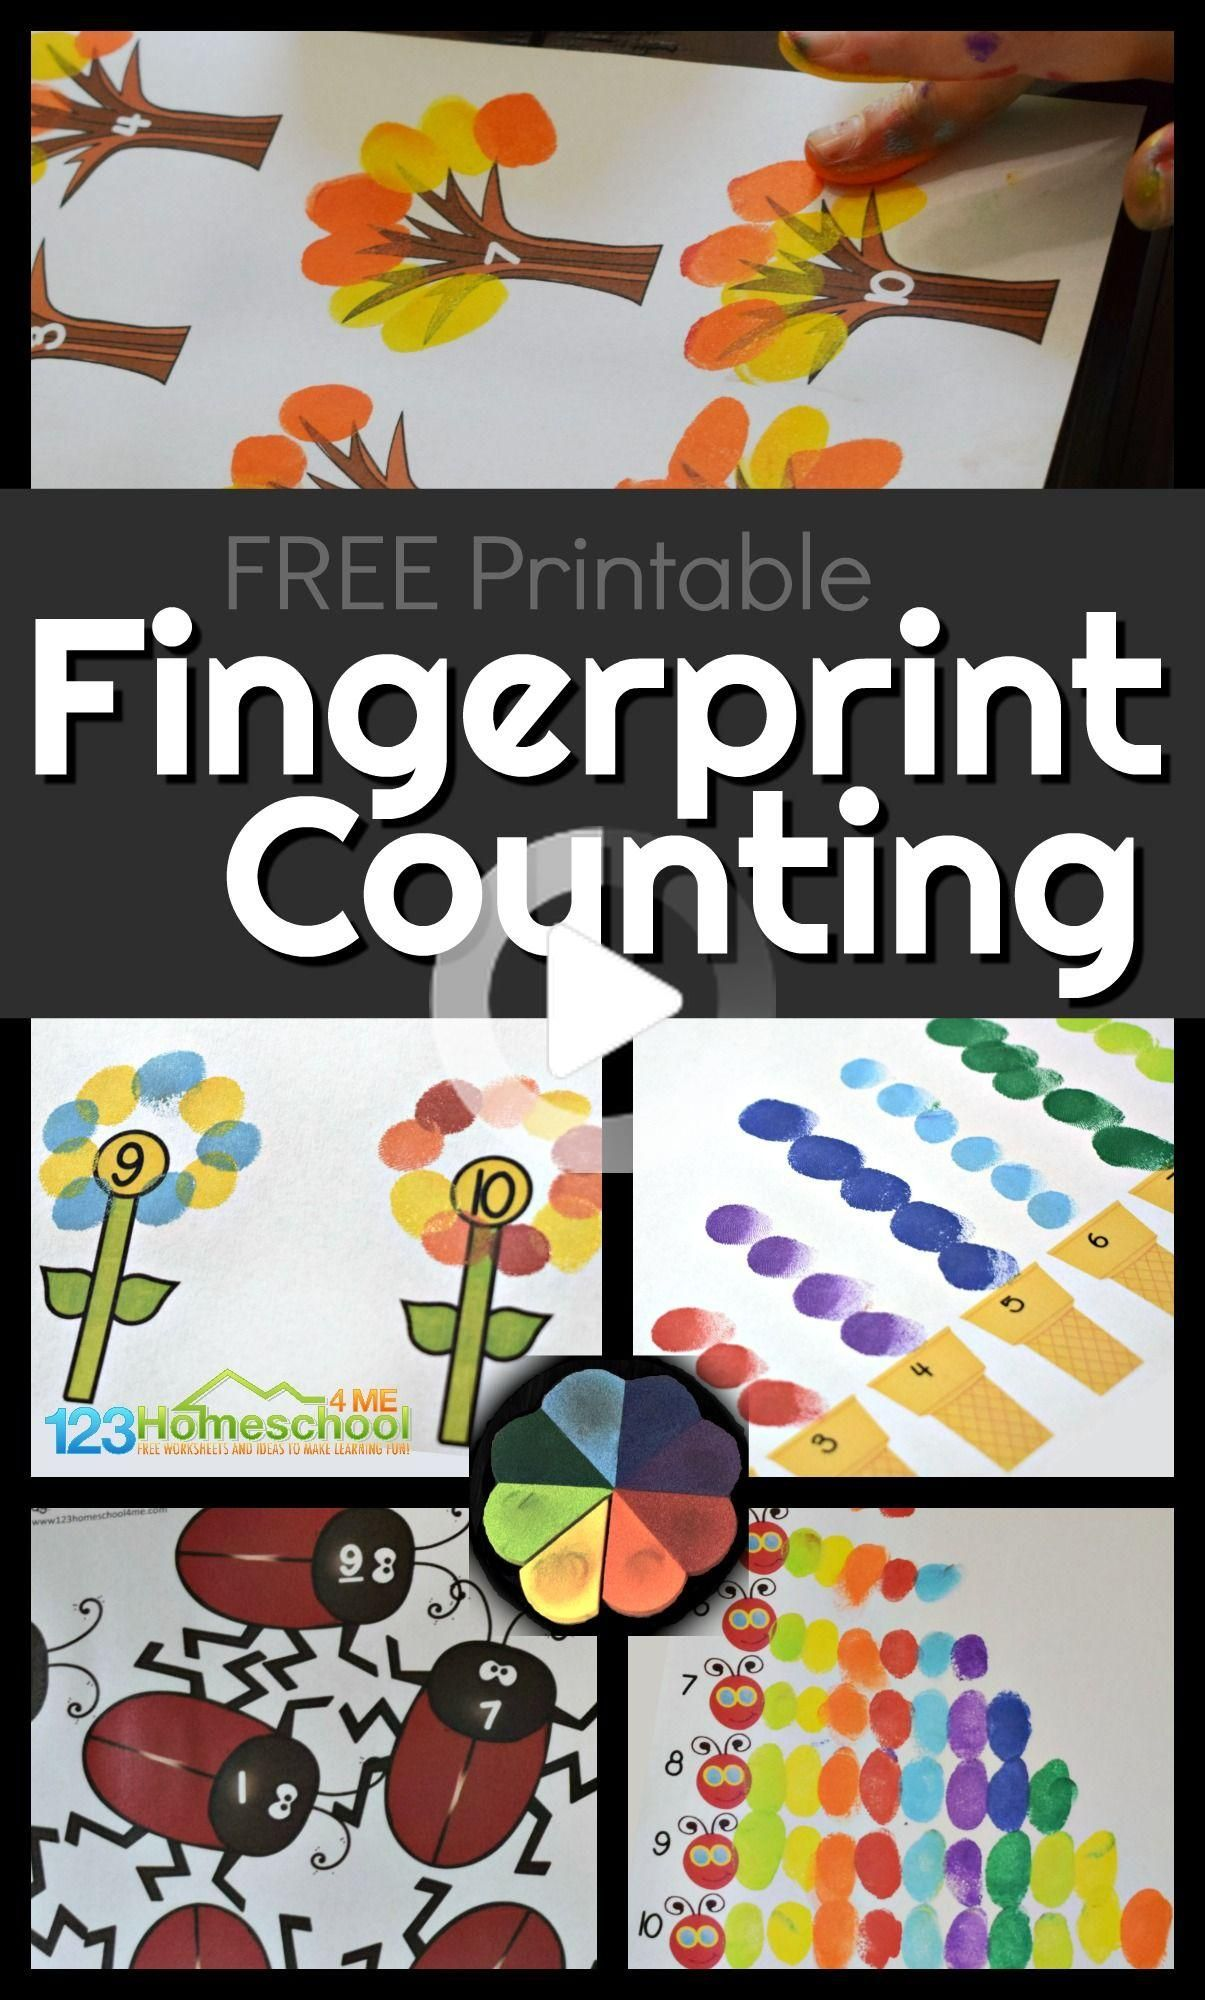 Fingerprint Counting Activity For Kids In